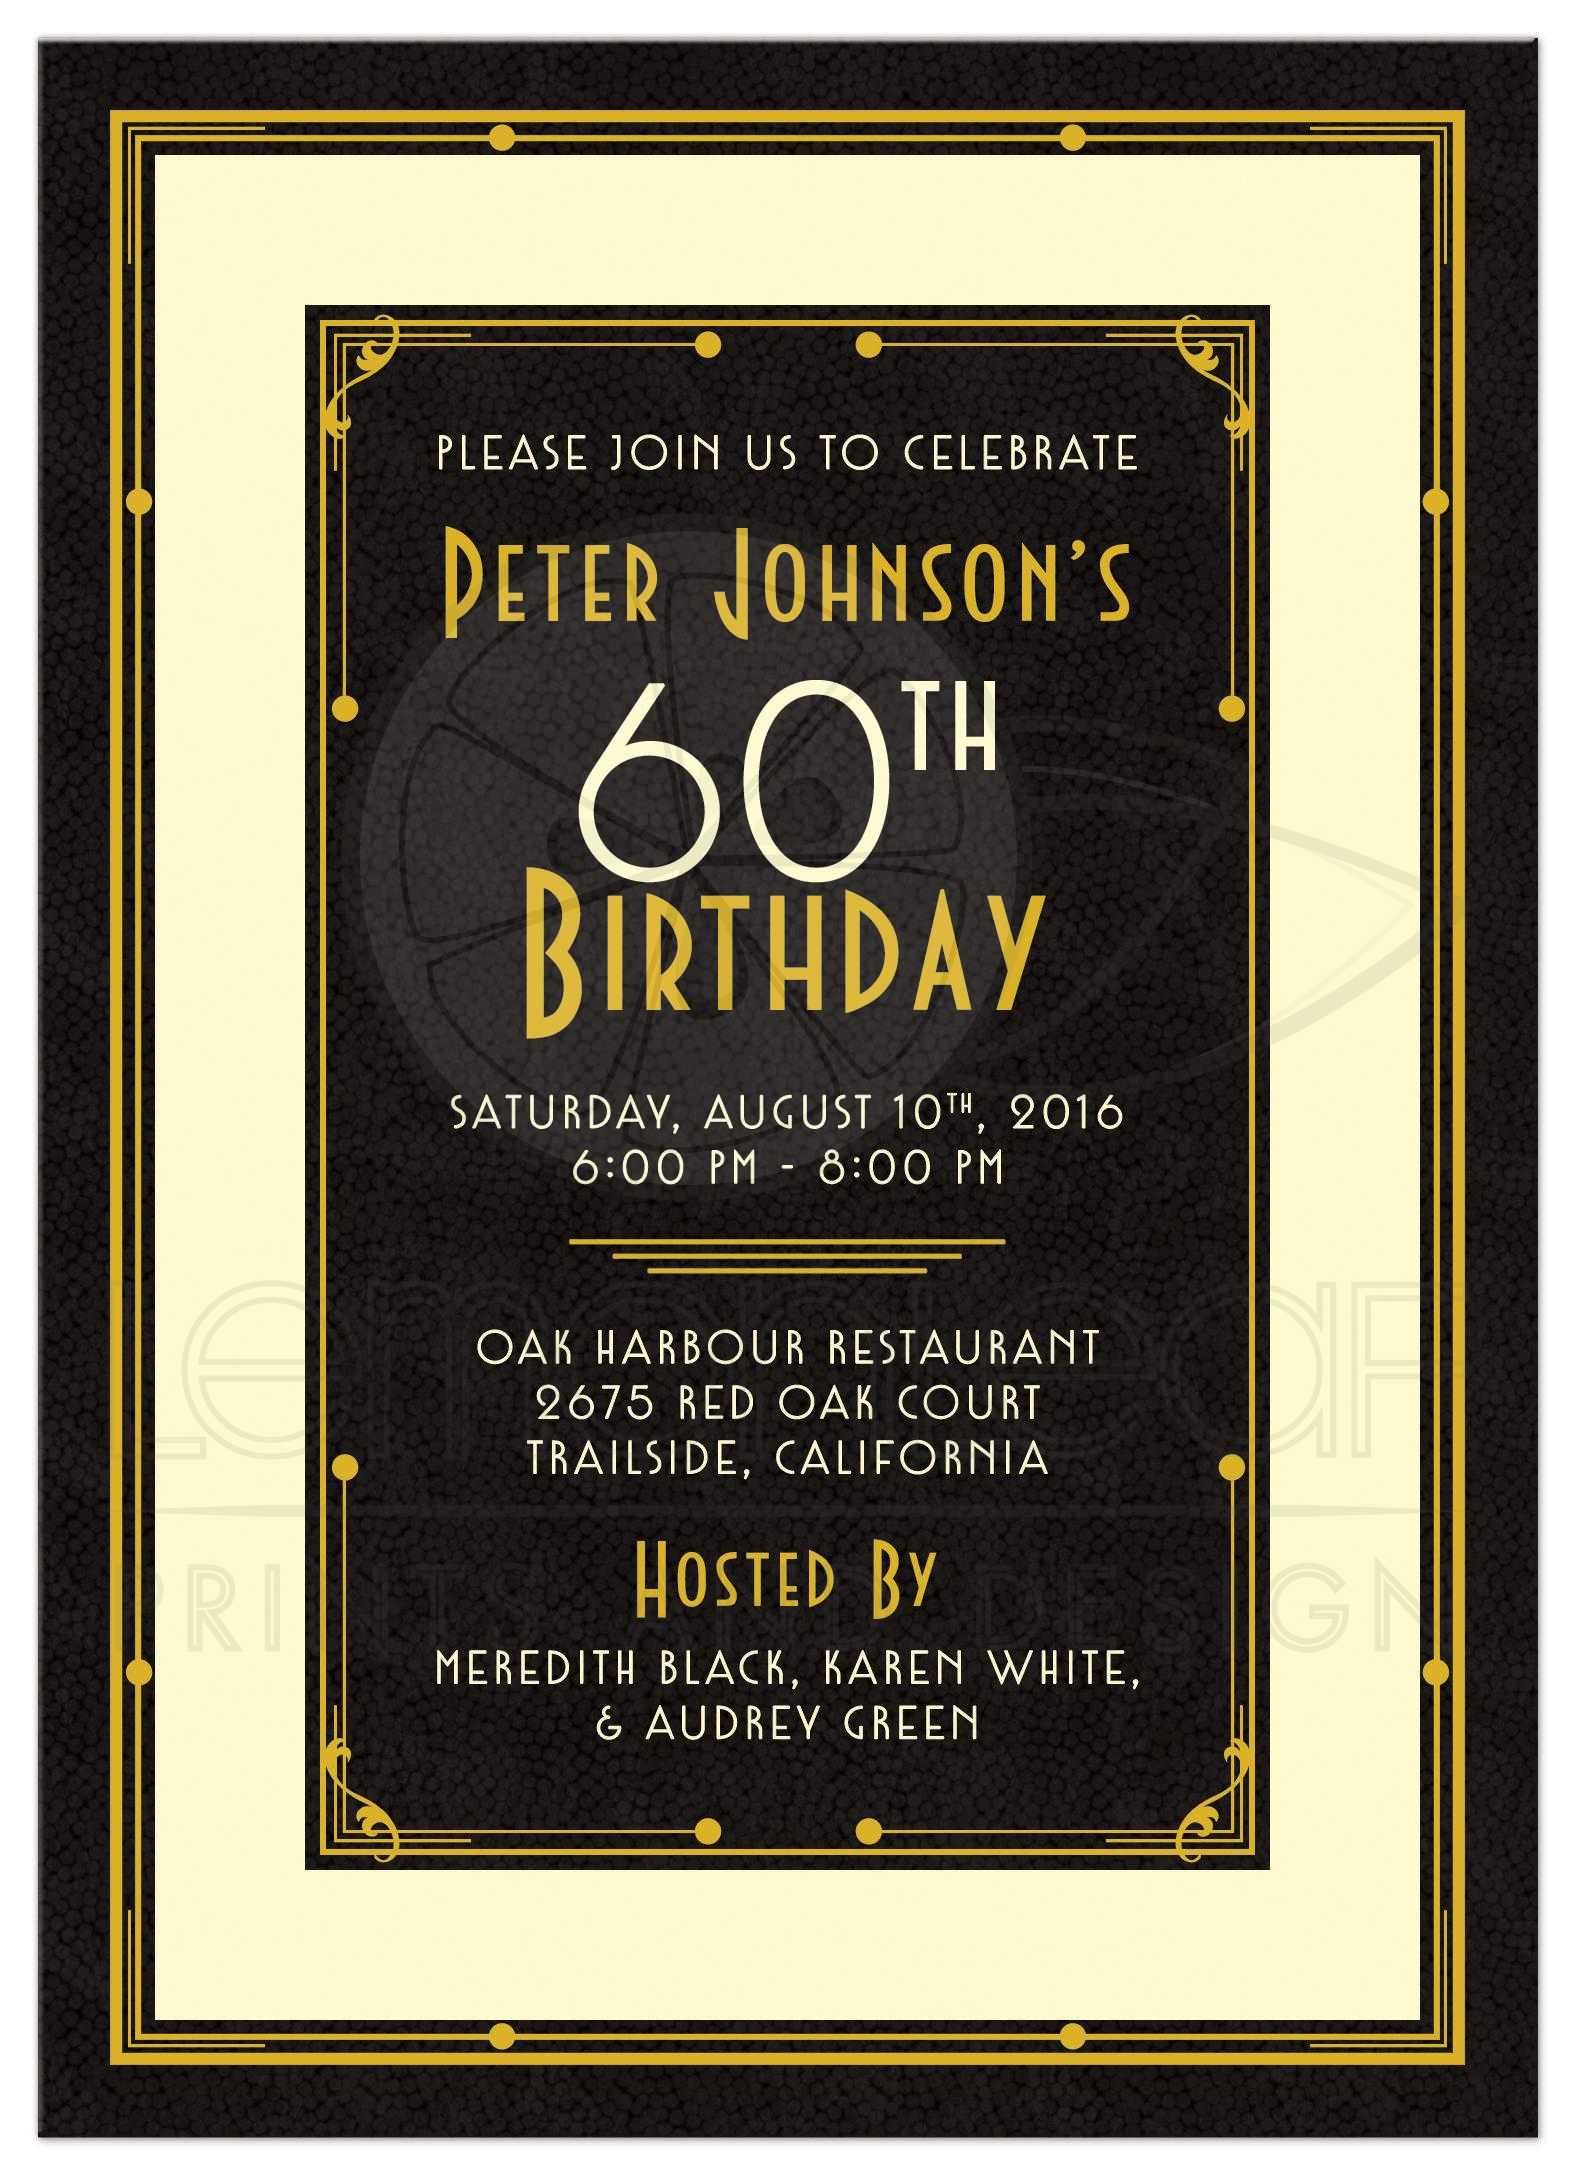 Man S 60th Birthday Invitation Black Gold Art Deco 90th Birthday Invitations 75th Birthday Invitations 60th Birthday Party Invitations